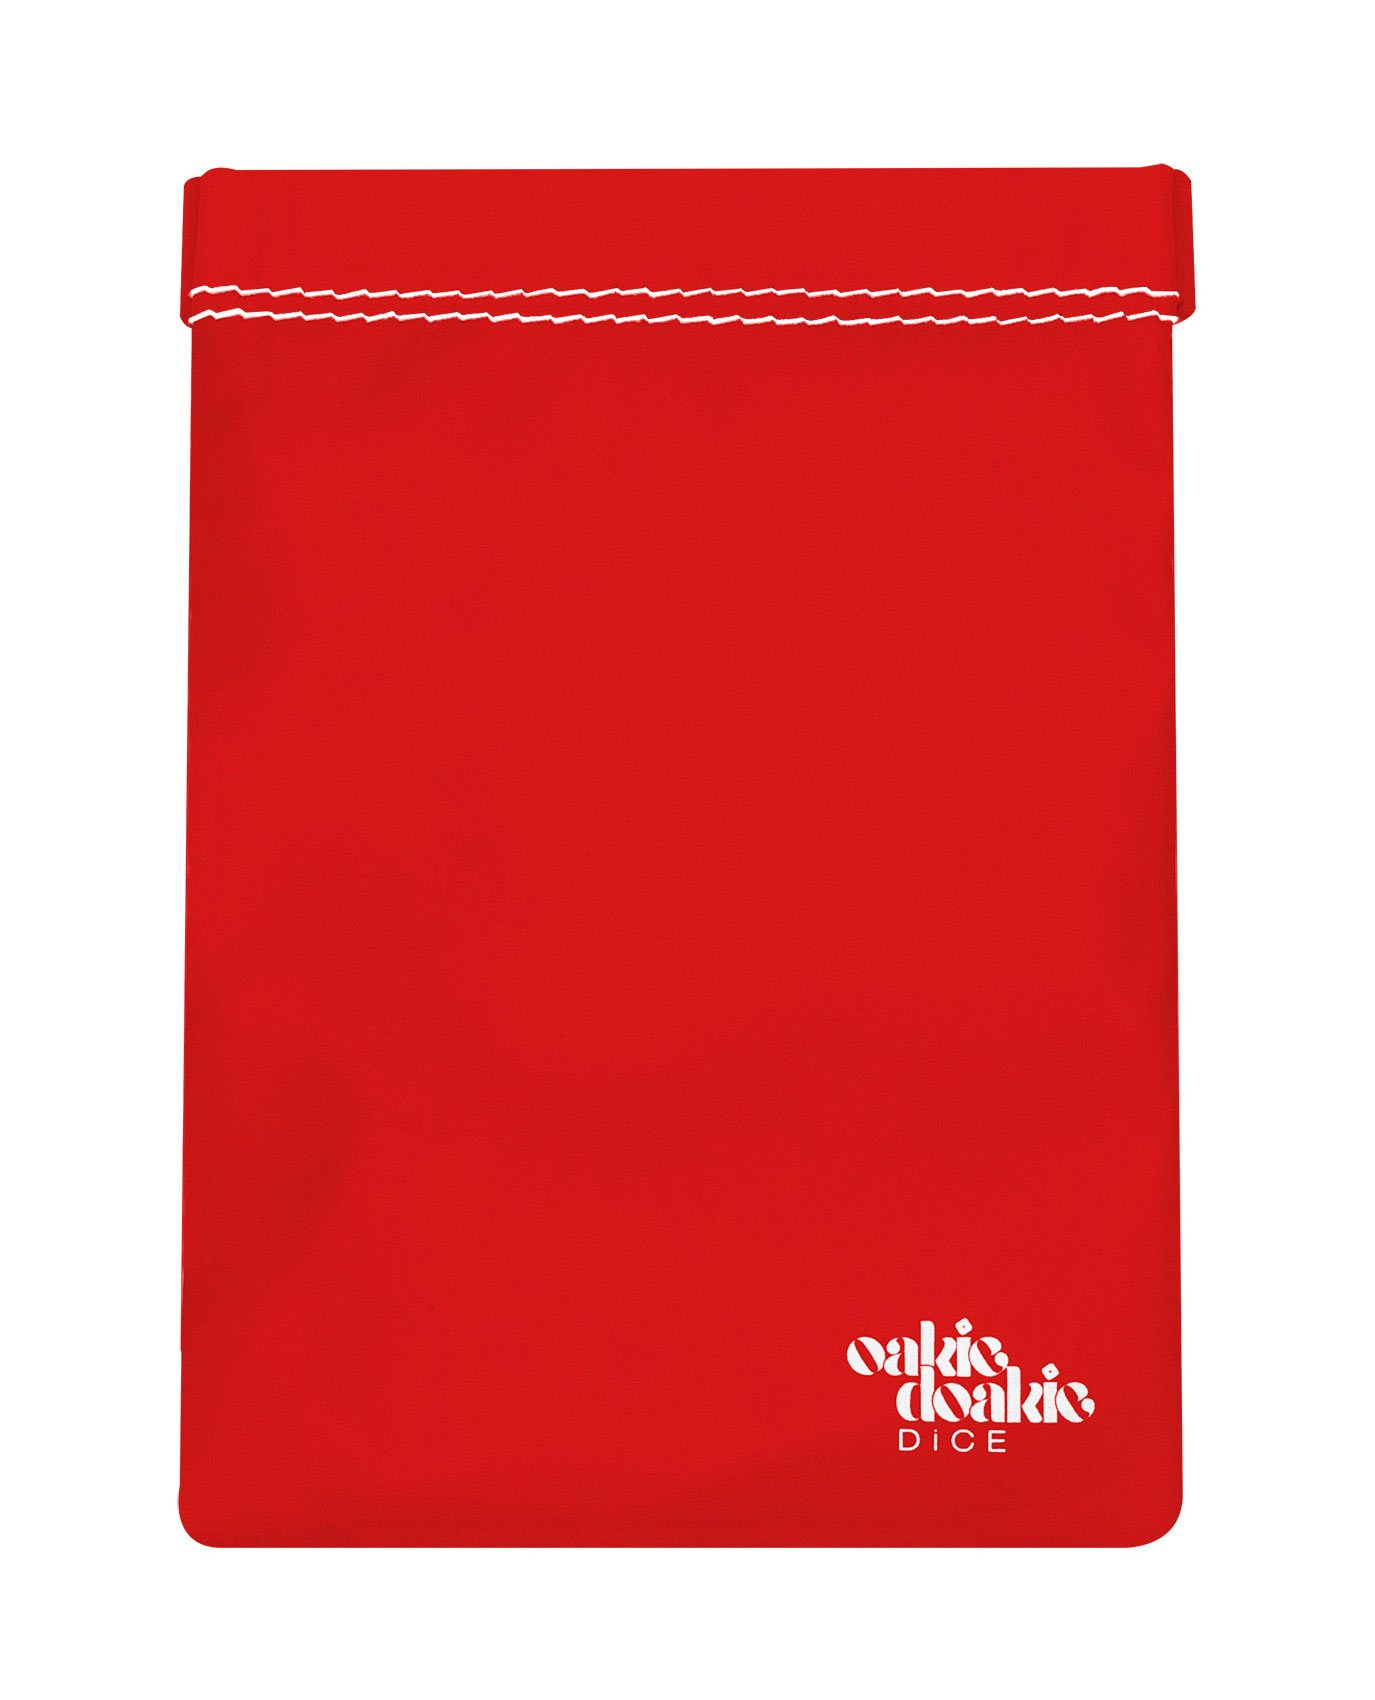 Oakie Doakie Dice Bag large - red